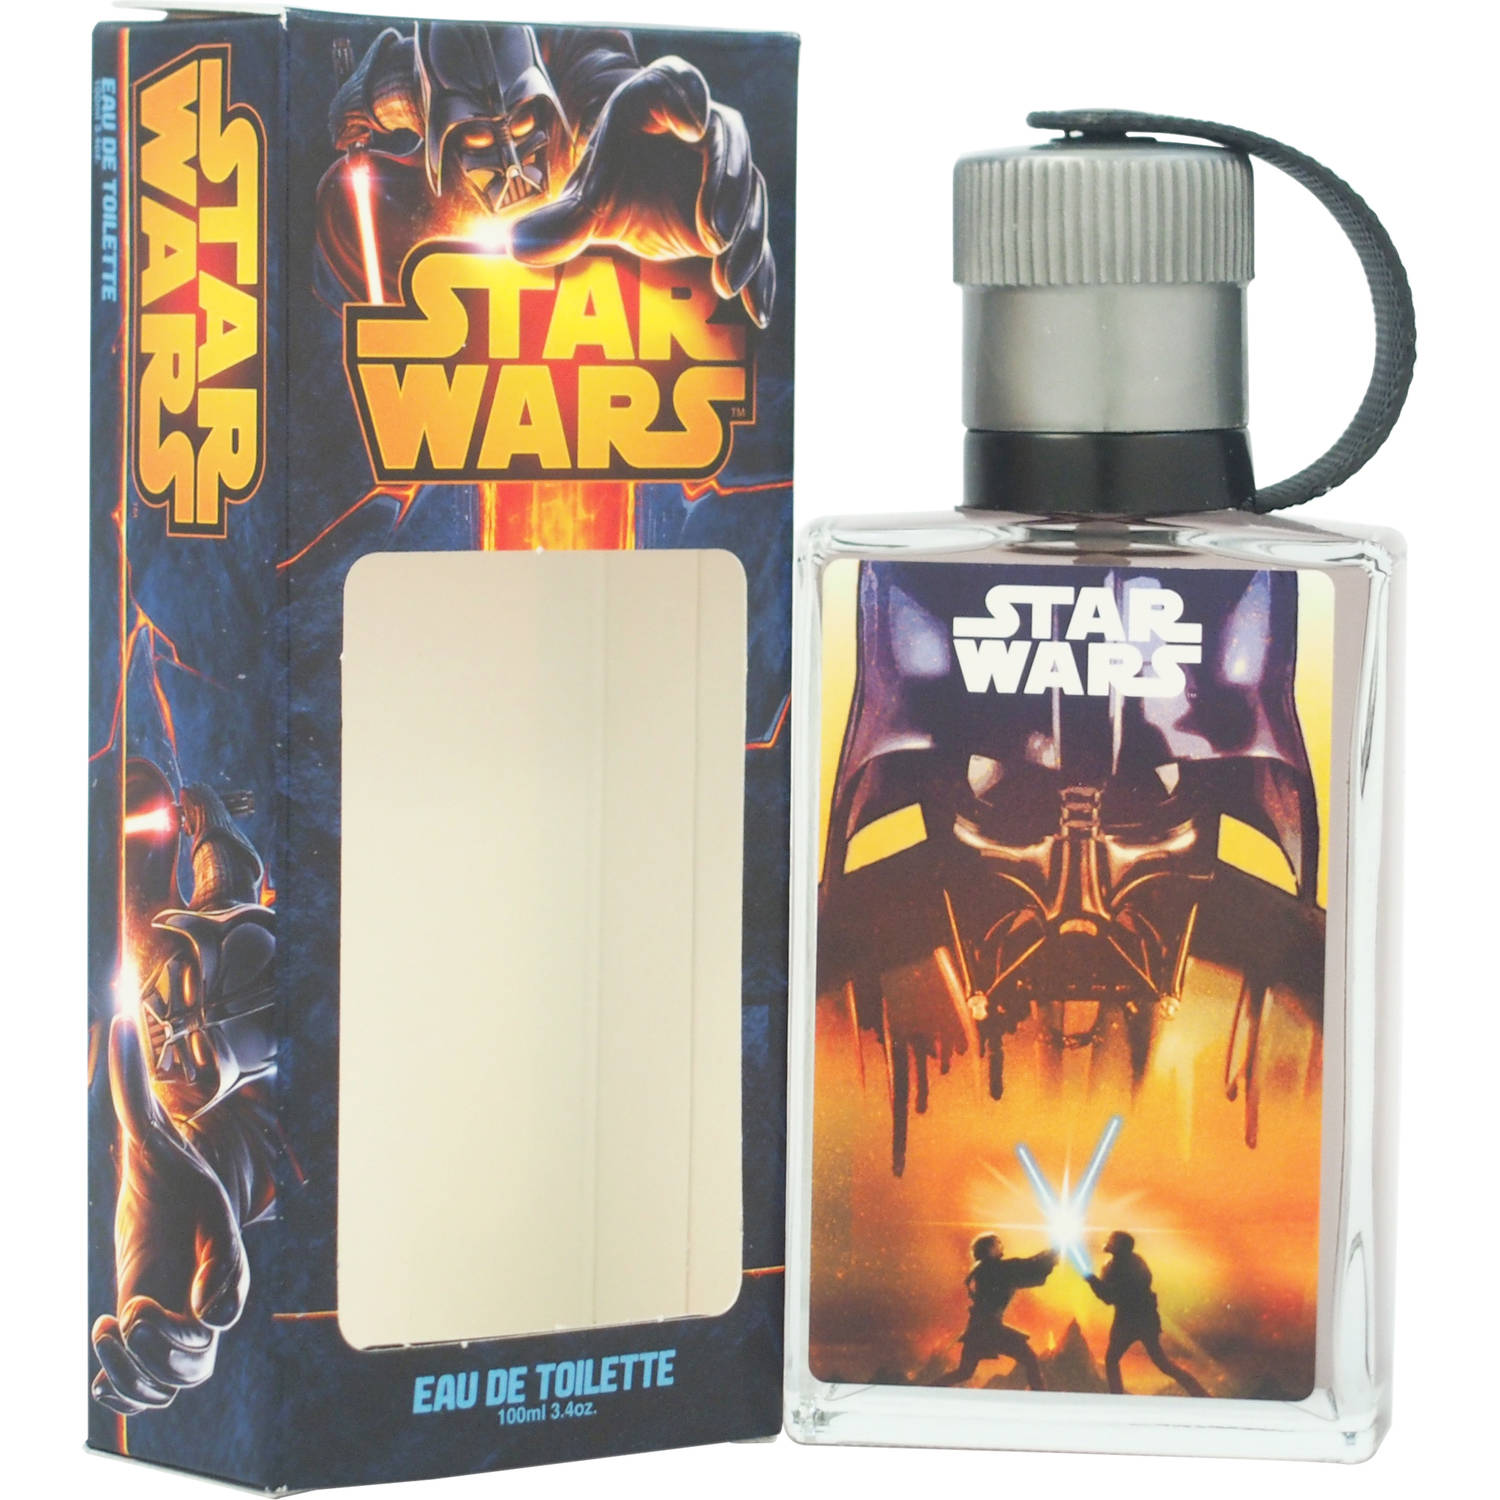 Marmol & Son Star Wars Fragrance for Kids, 3.4 fl oz